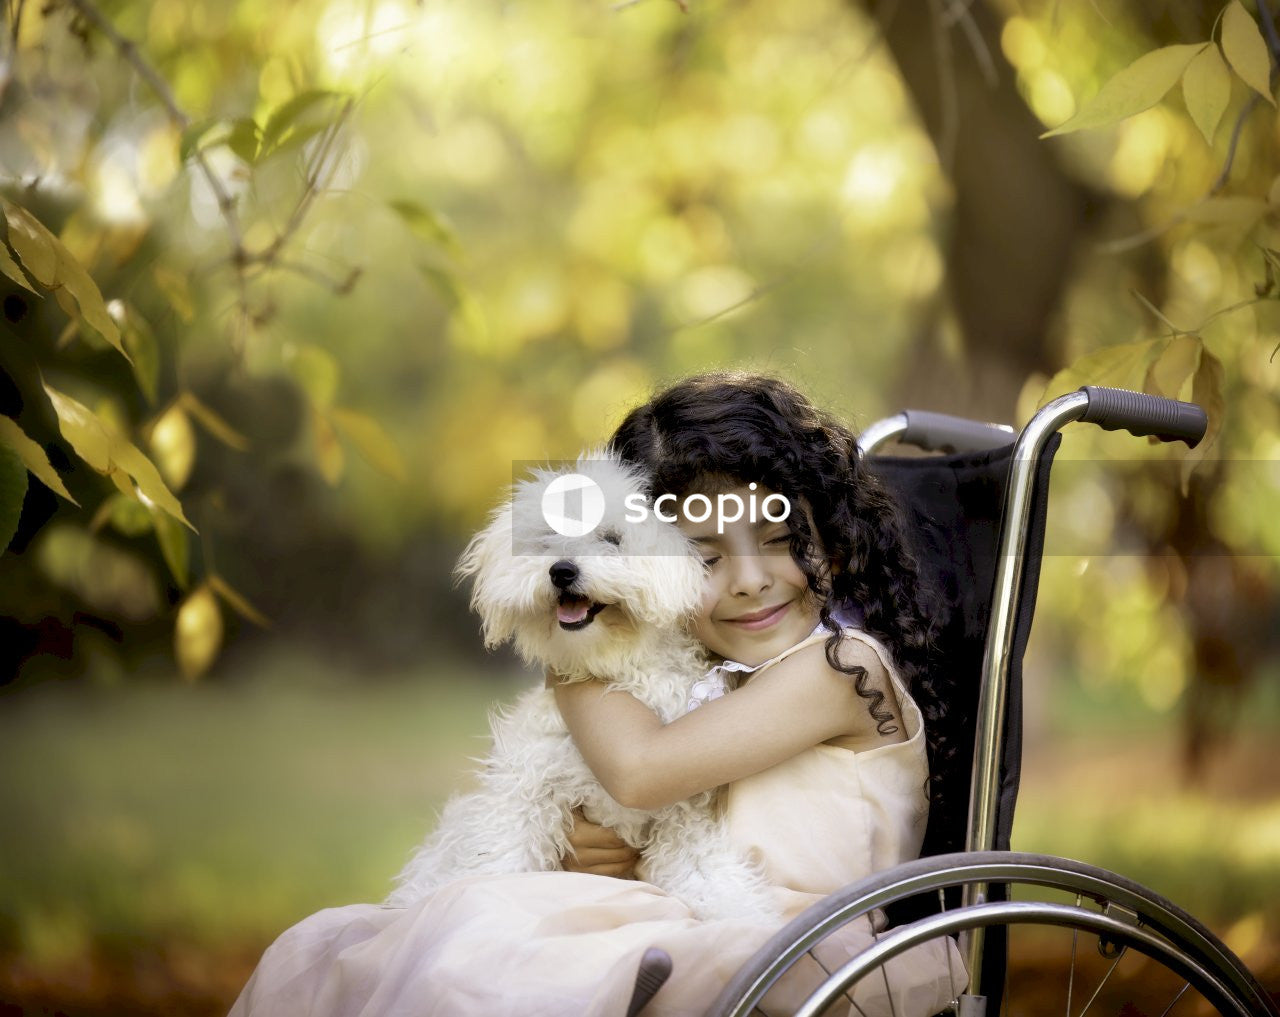 Girl smiling and hugging dog while sitting on wheelchair